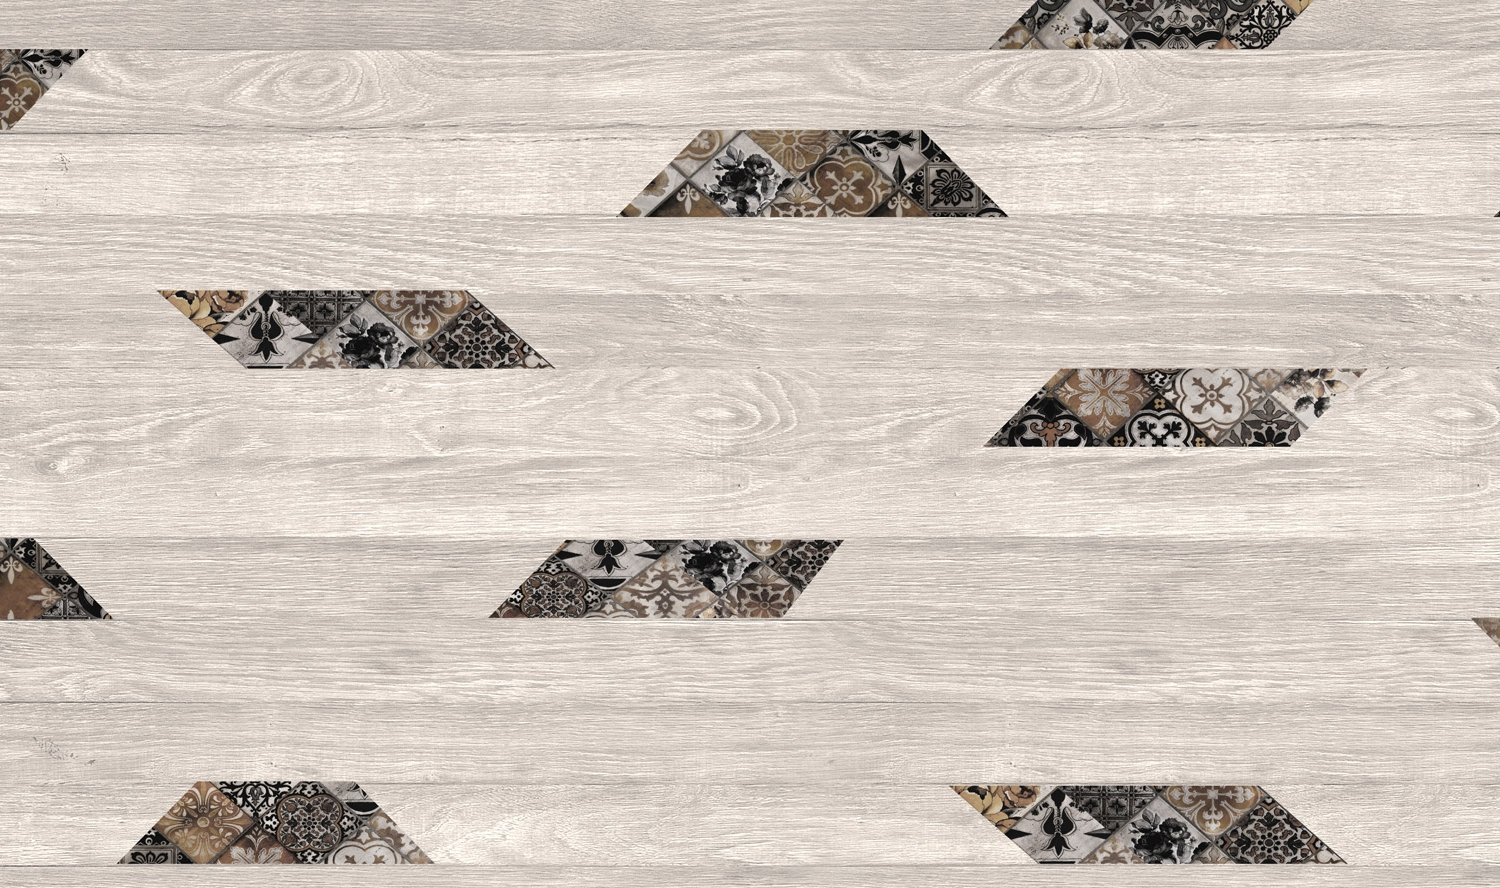 D'infinity, Abstrakt Kreatif Laminates For Living Room-Sundek International